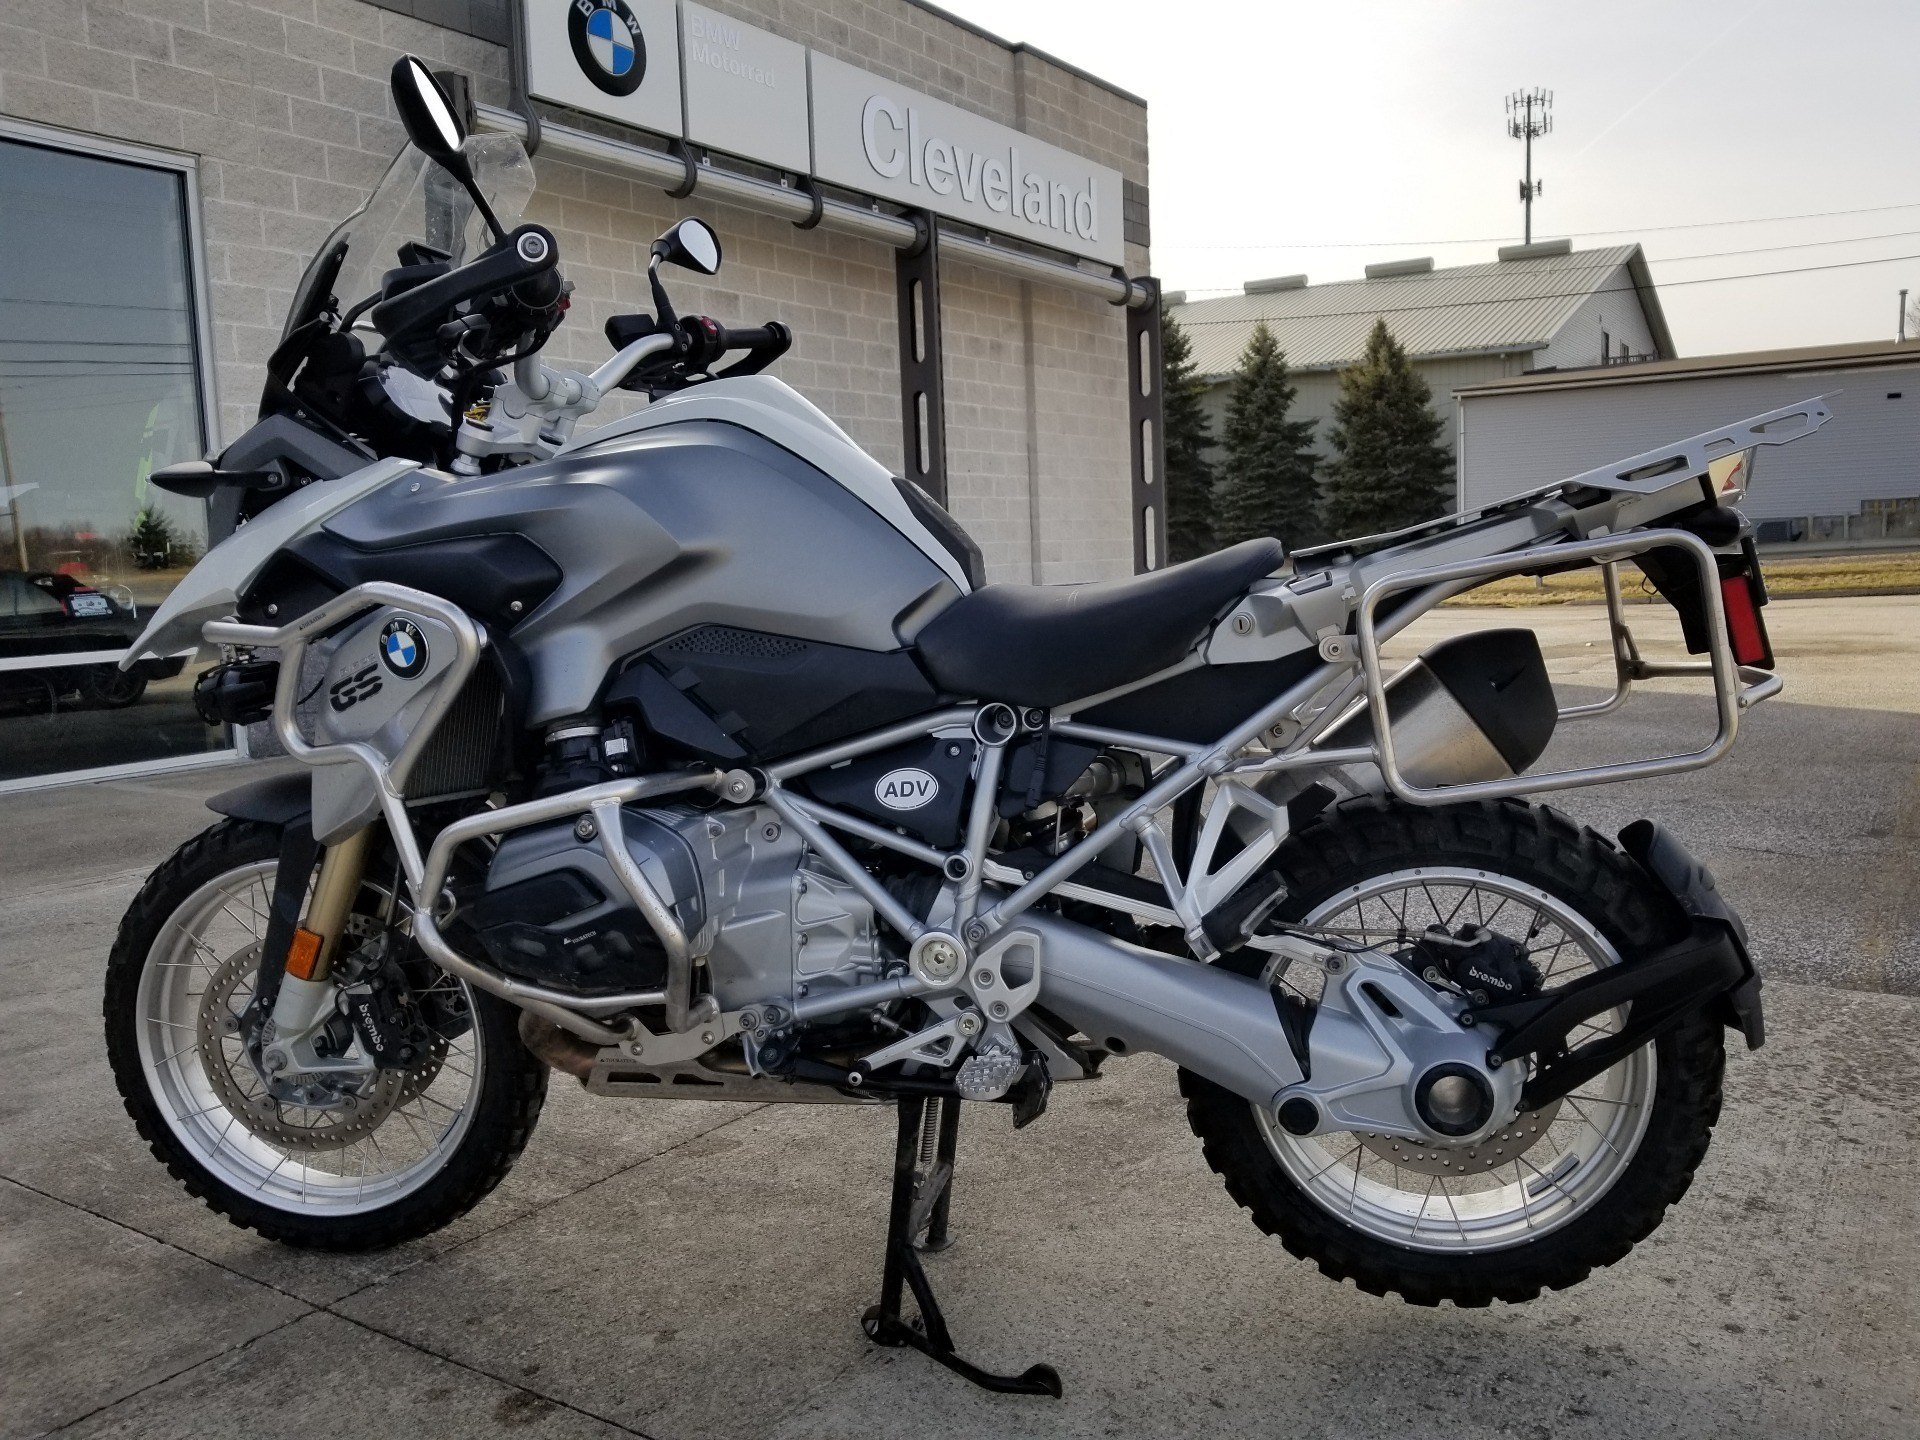 2013 BMW R 1200 GS in Aurora, Ohio - Photo 2